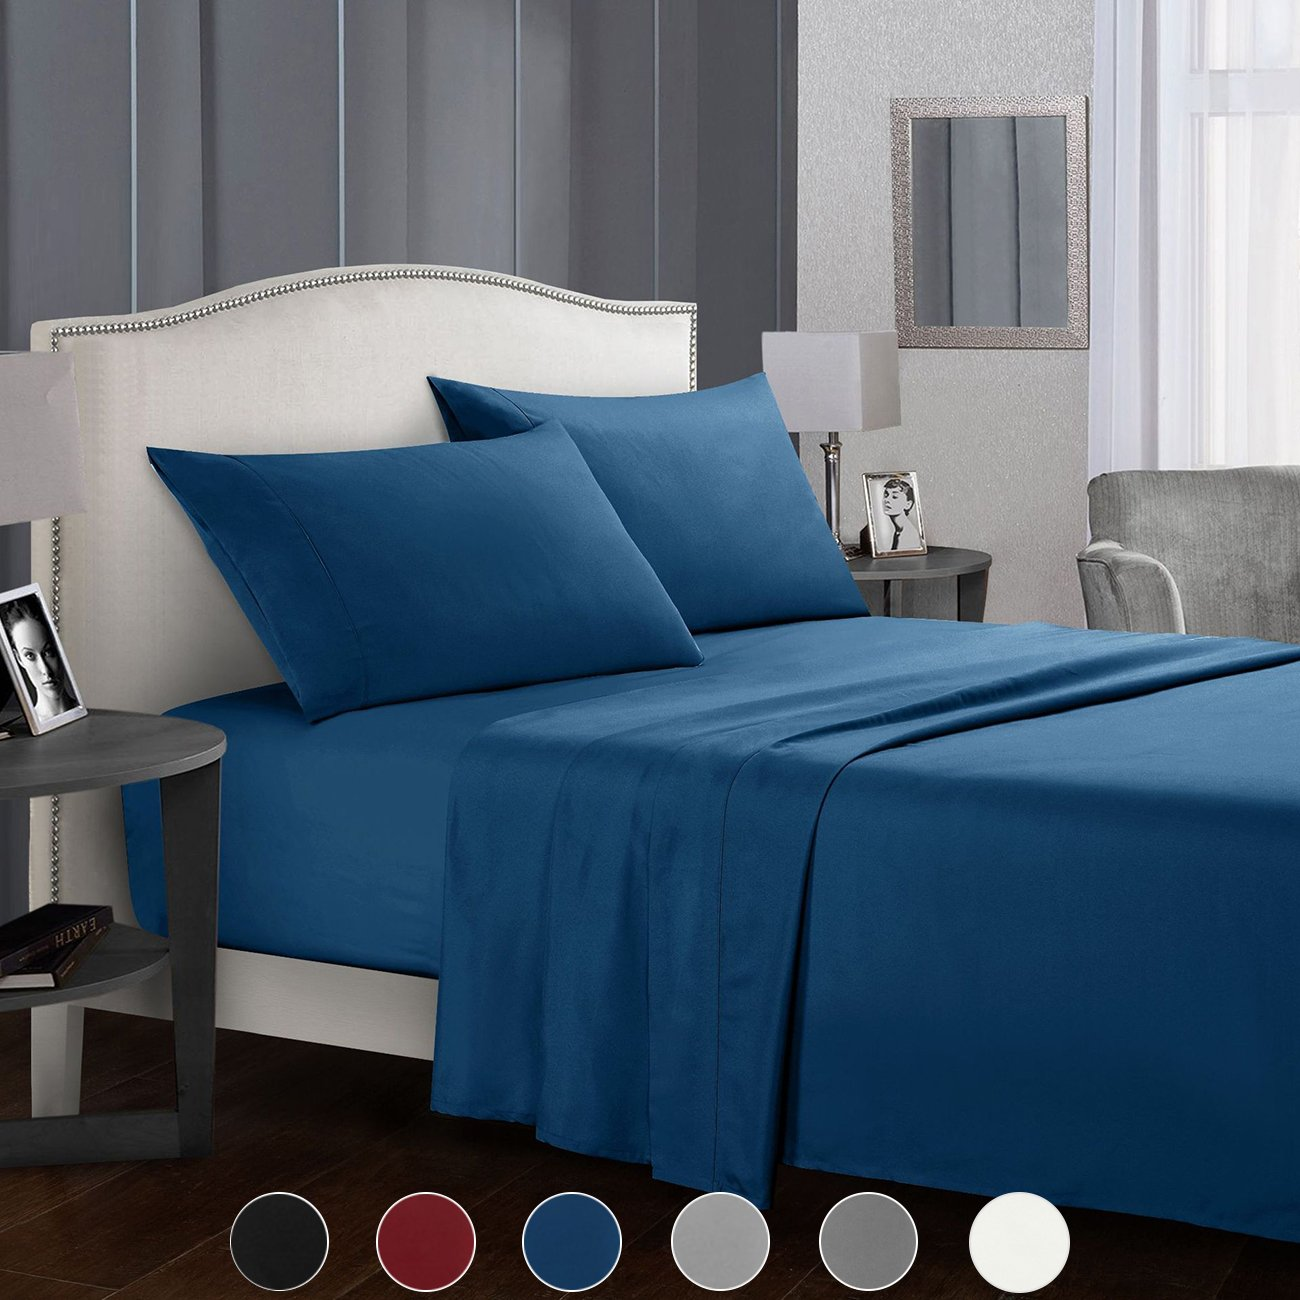 TIANSHU Bed Sheet Set - Brushed Microfiber 1800 Bedding - Wrinkle, Fade, Stain Resistant - Hypoallergenic - 4 Piece (Full, Navy Blue)